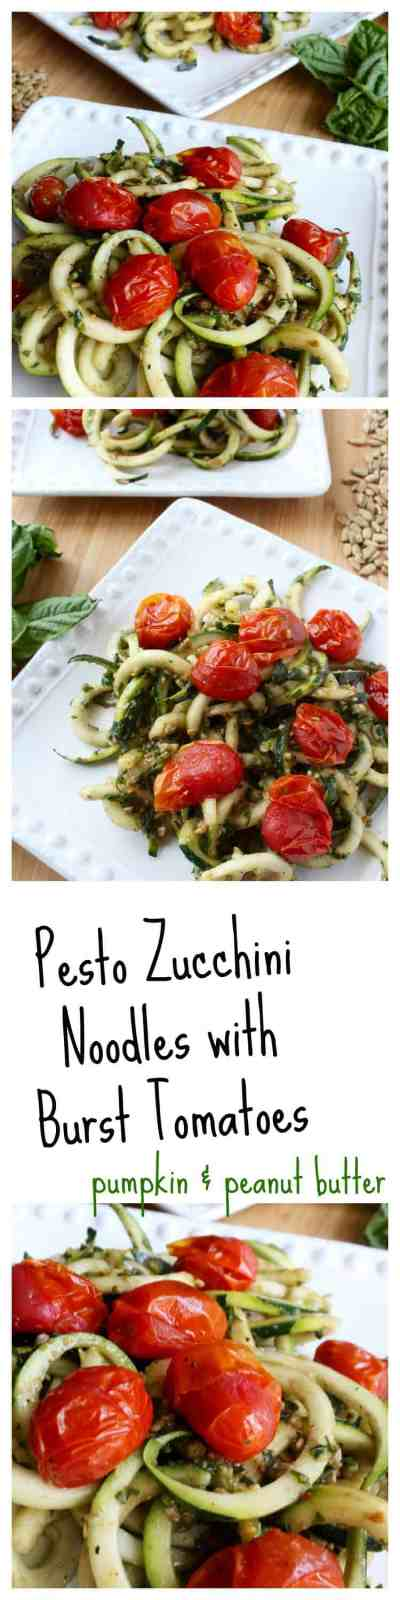 Pesto Zucchini Noodles with Burst Tomatoes // pumpkin & peanut butter